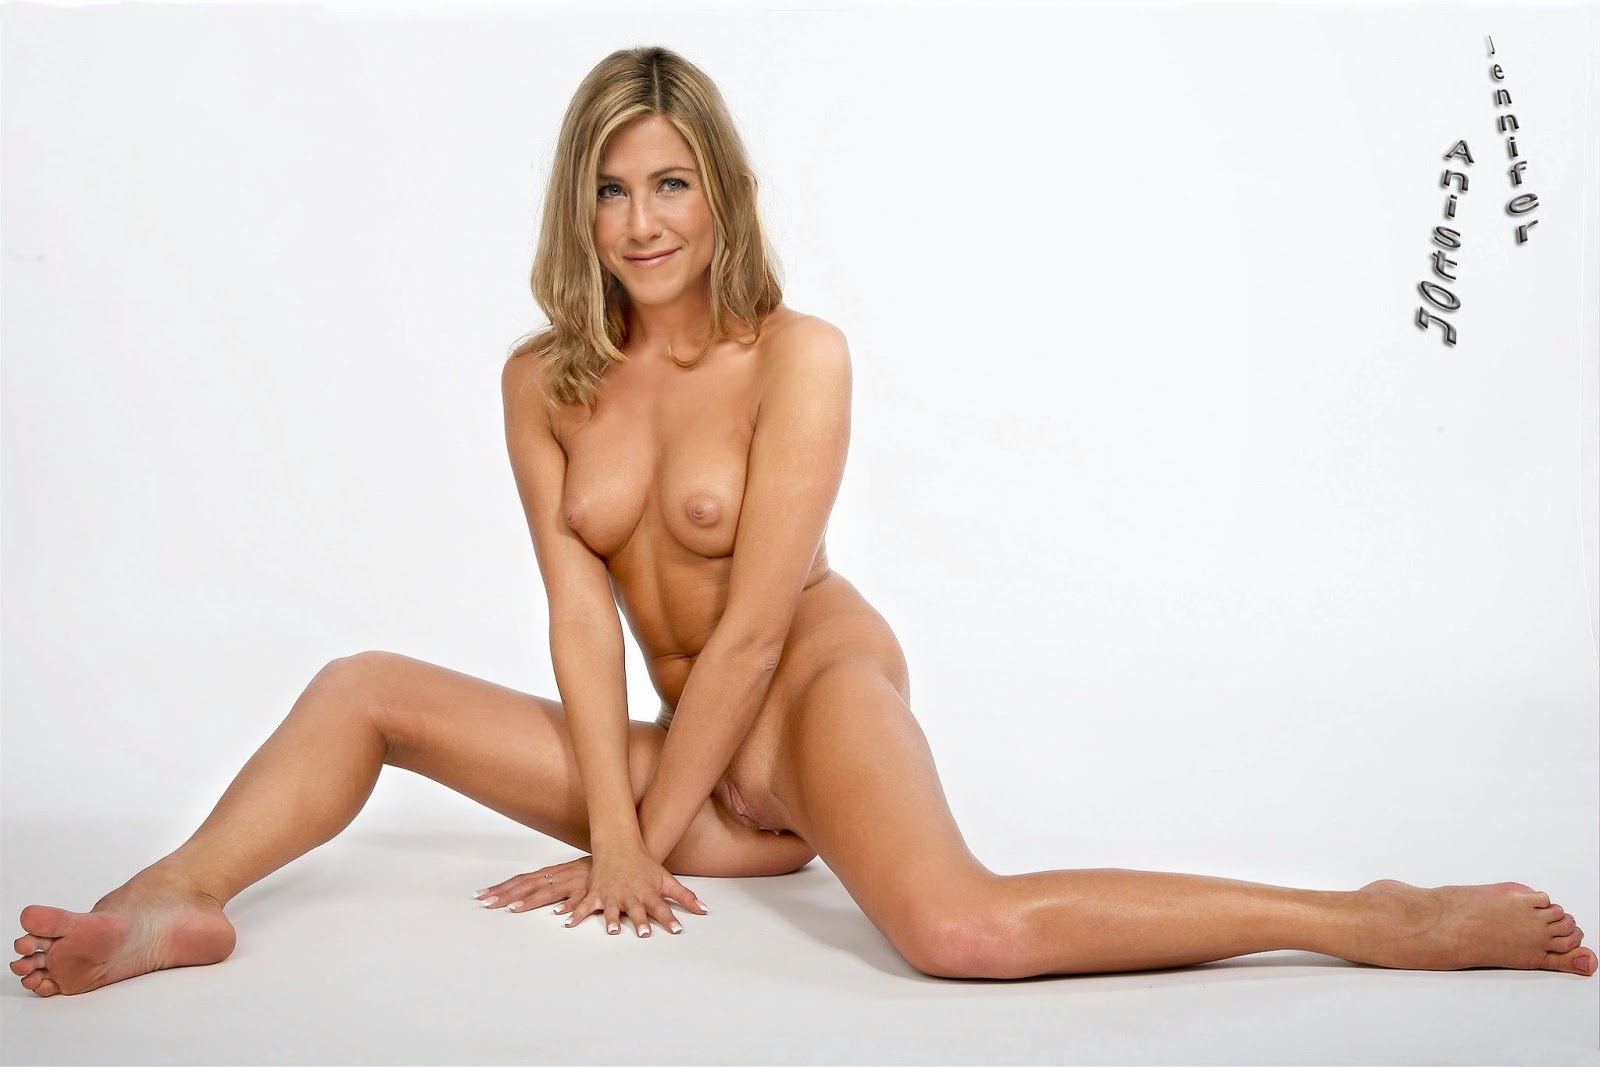 jennifer aniston in nude